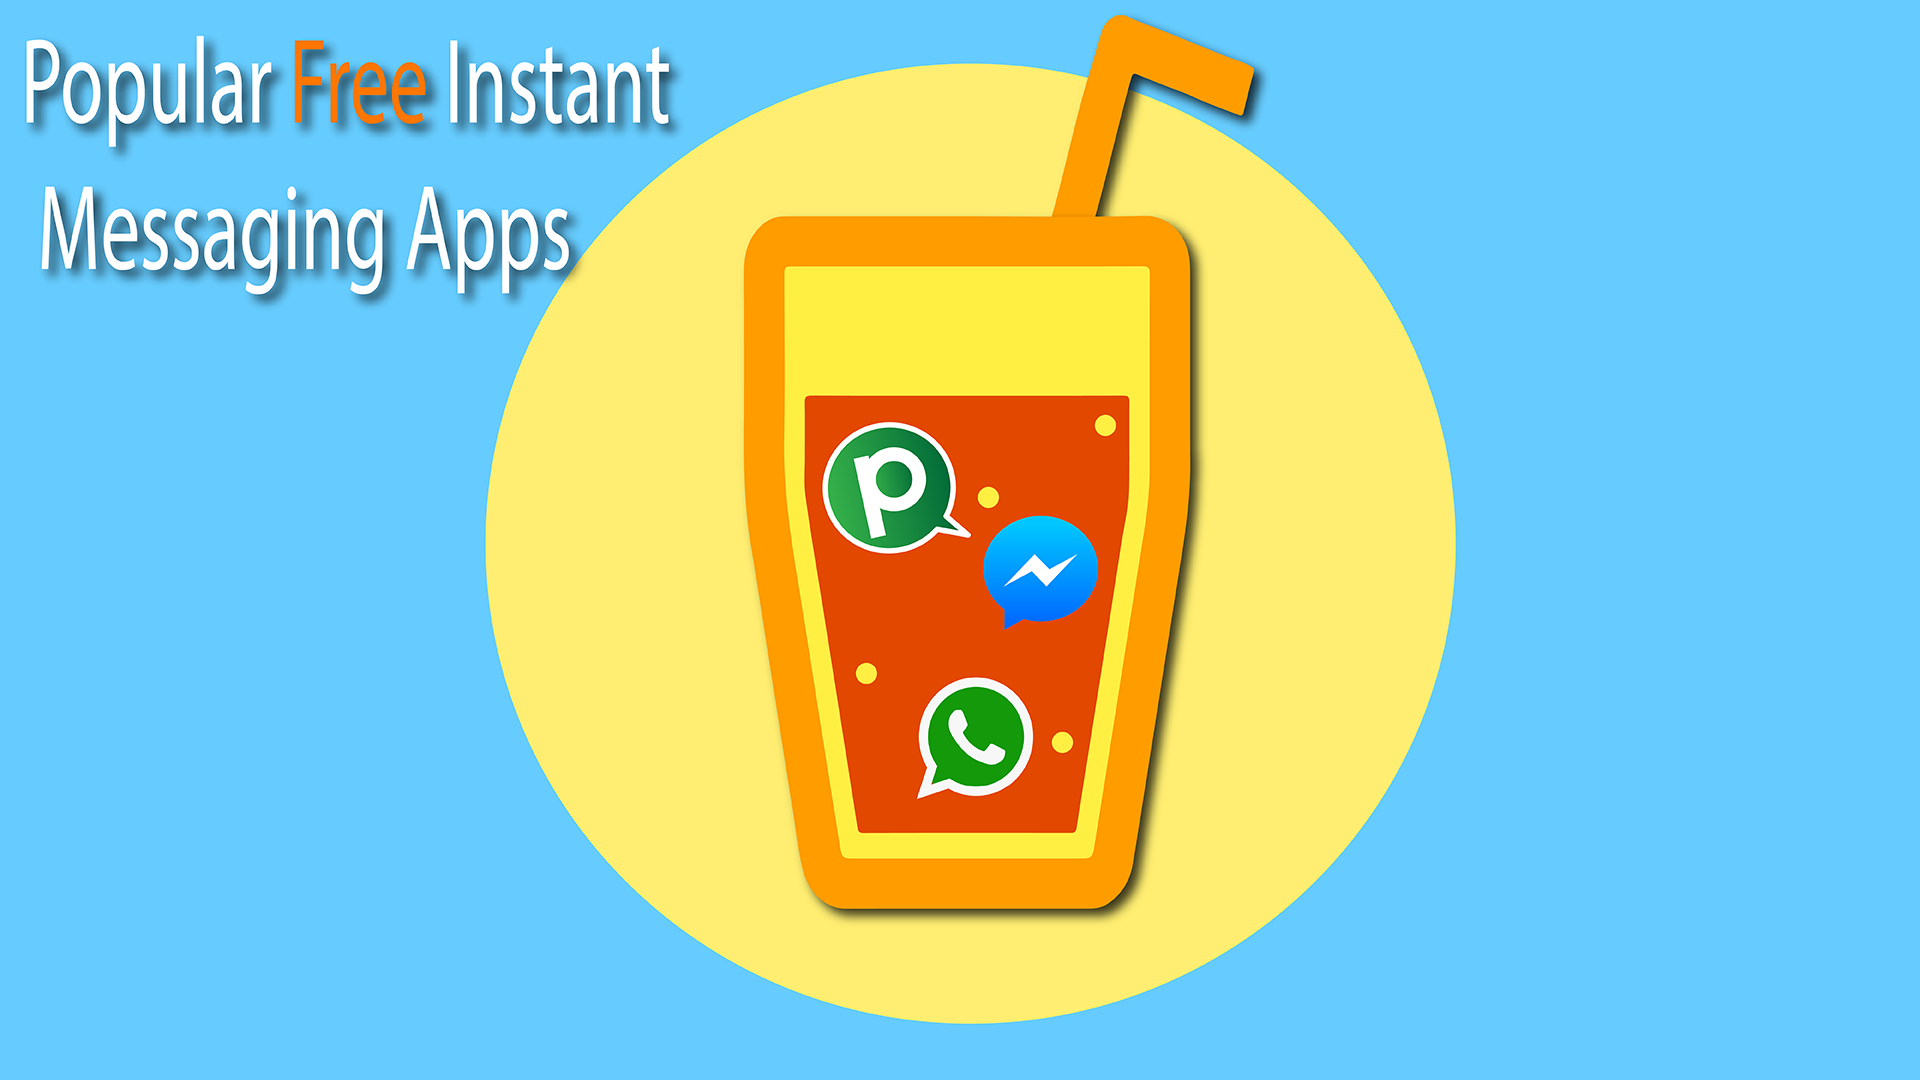 most popular free instant messaging apps